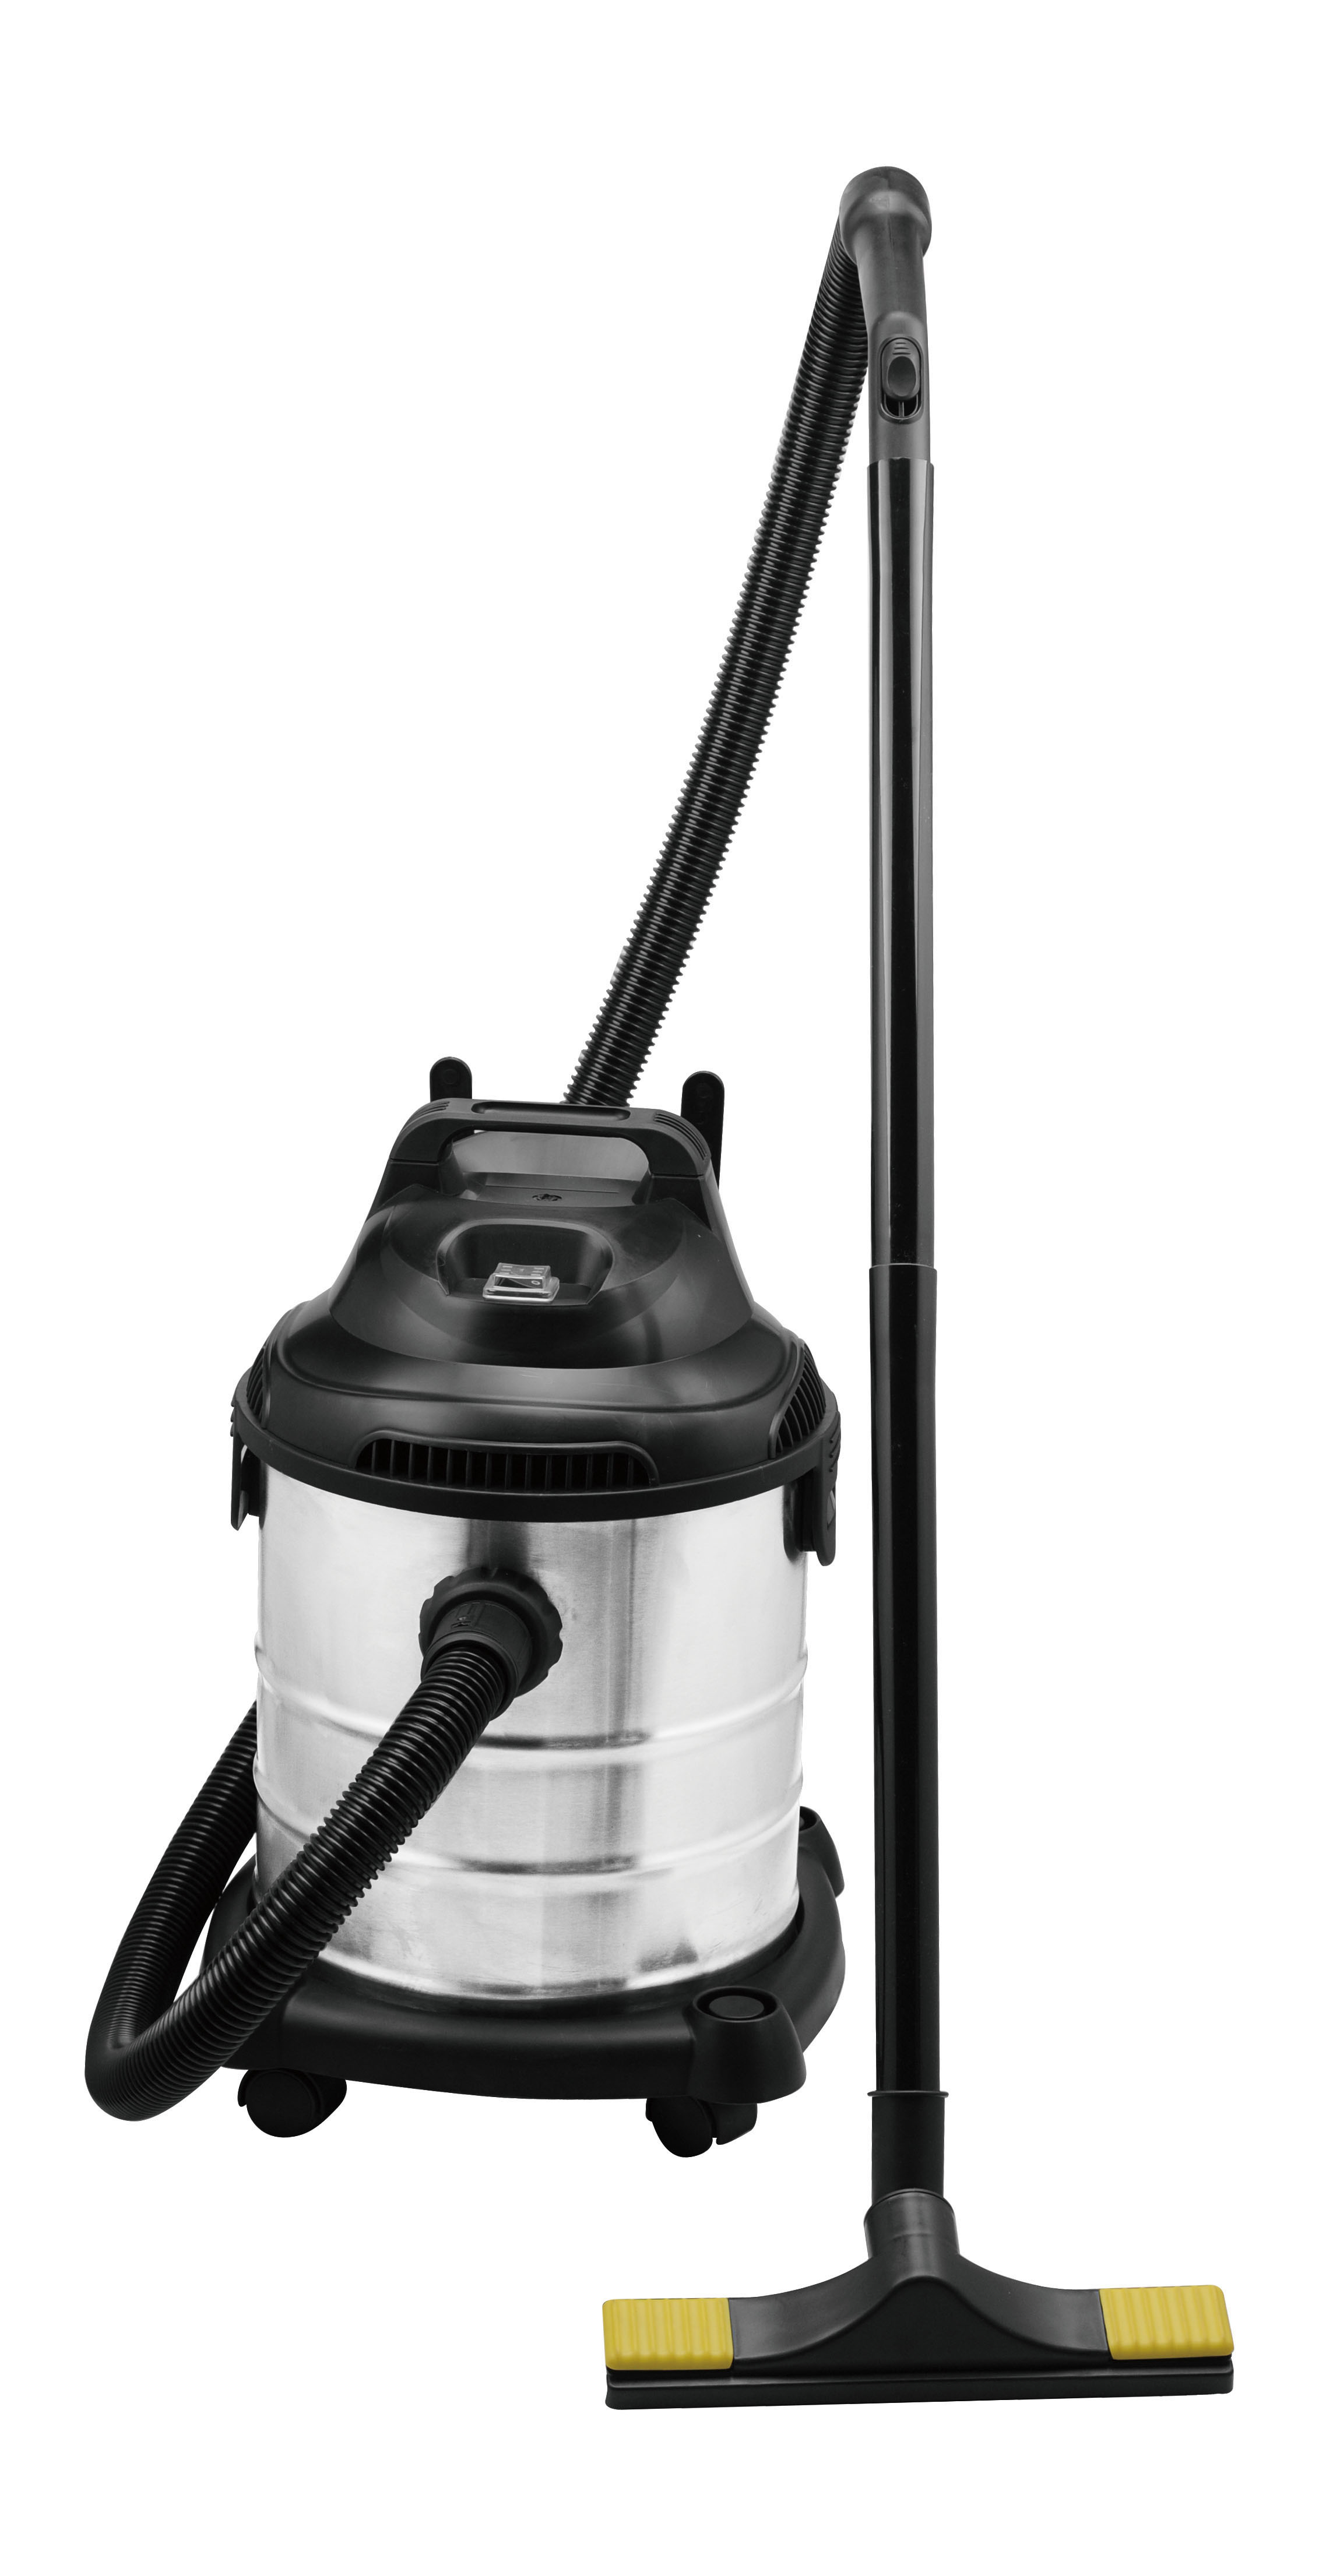 20Liter Wet Dry And Blowing Vacuum Cleaner